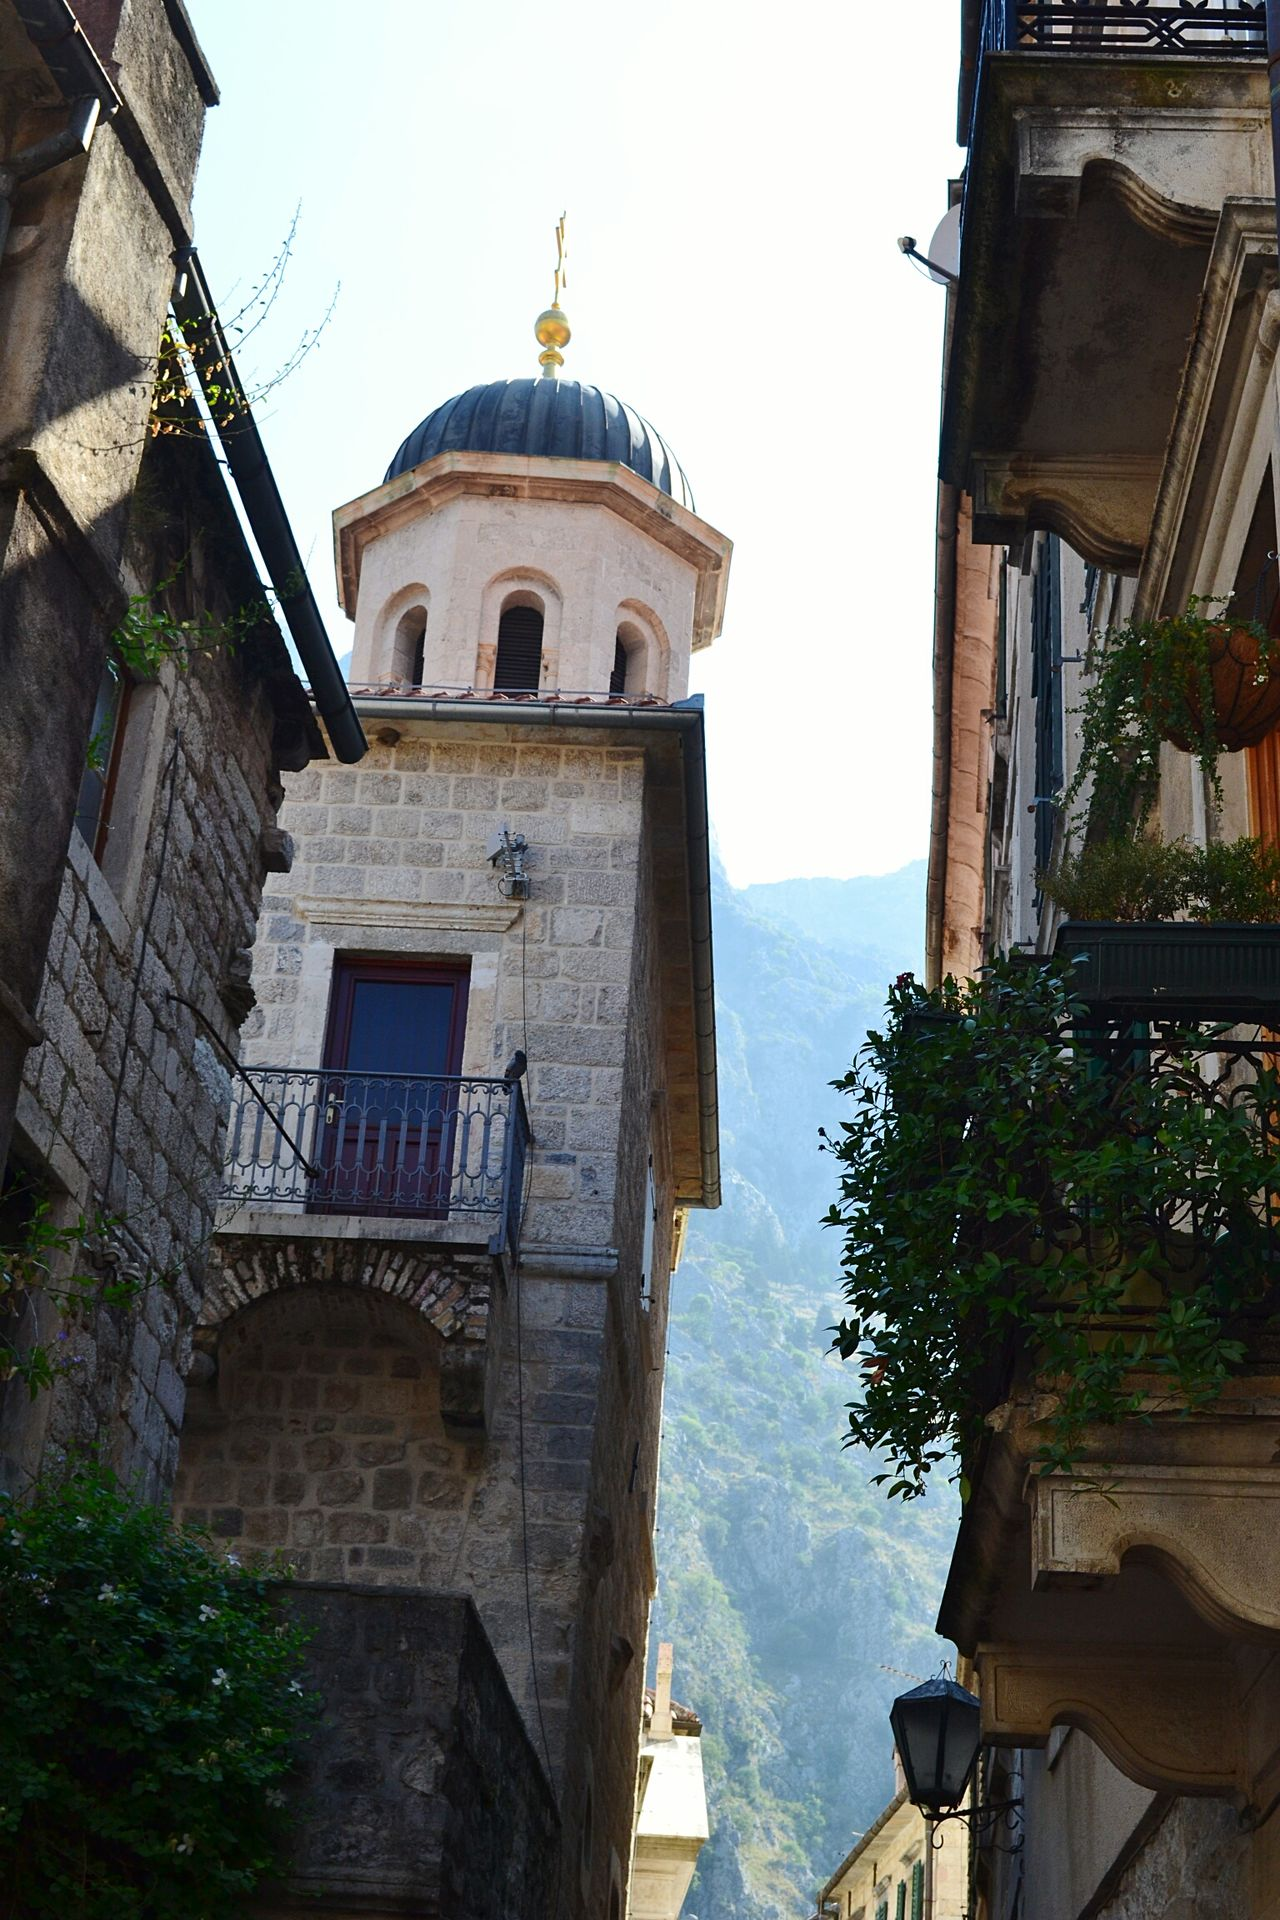 Hidden corners Kotor Cattaro Montenegro Architecture Travel Destinations Tower History Outdoors Façade Belltower Balcony Flowers